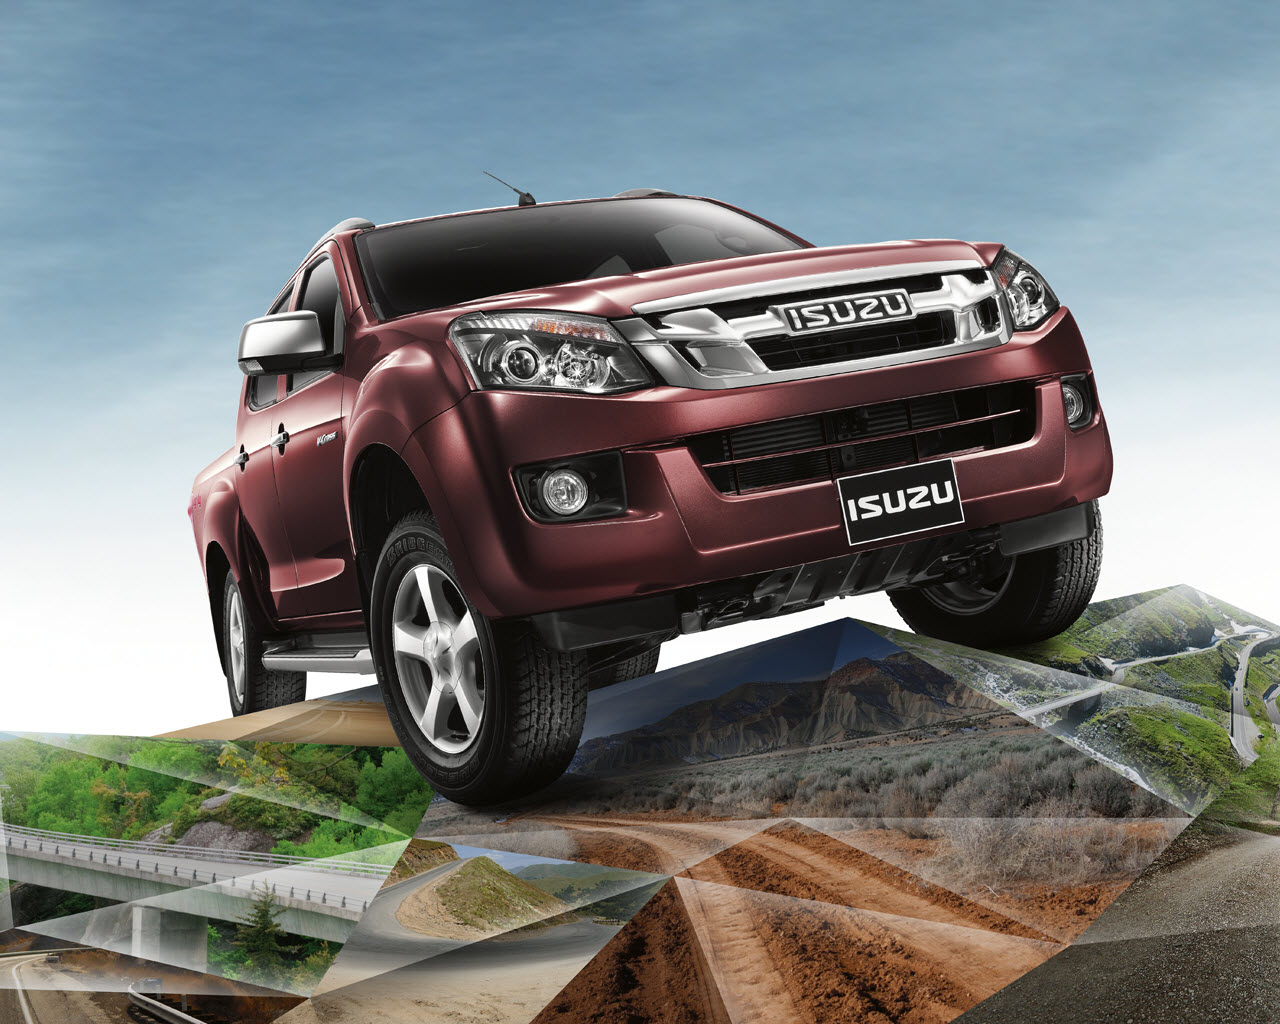 New Isuzu D-Max pick-up will be introduced in June 2012